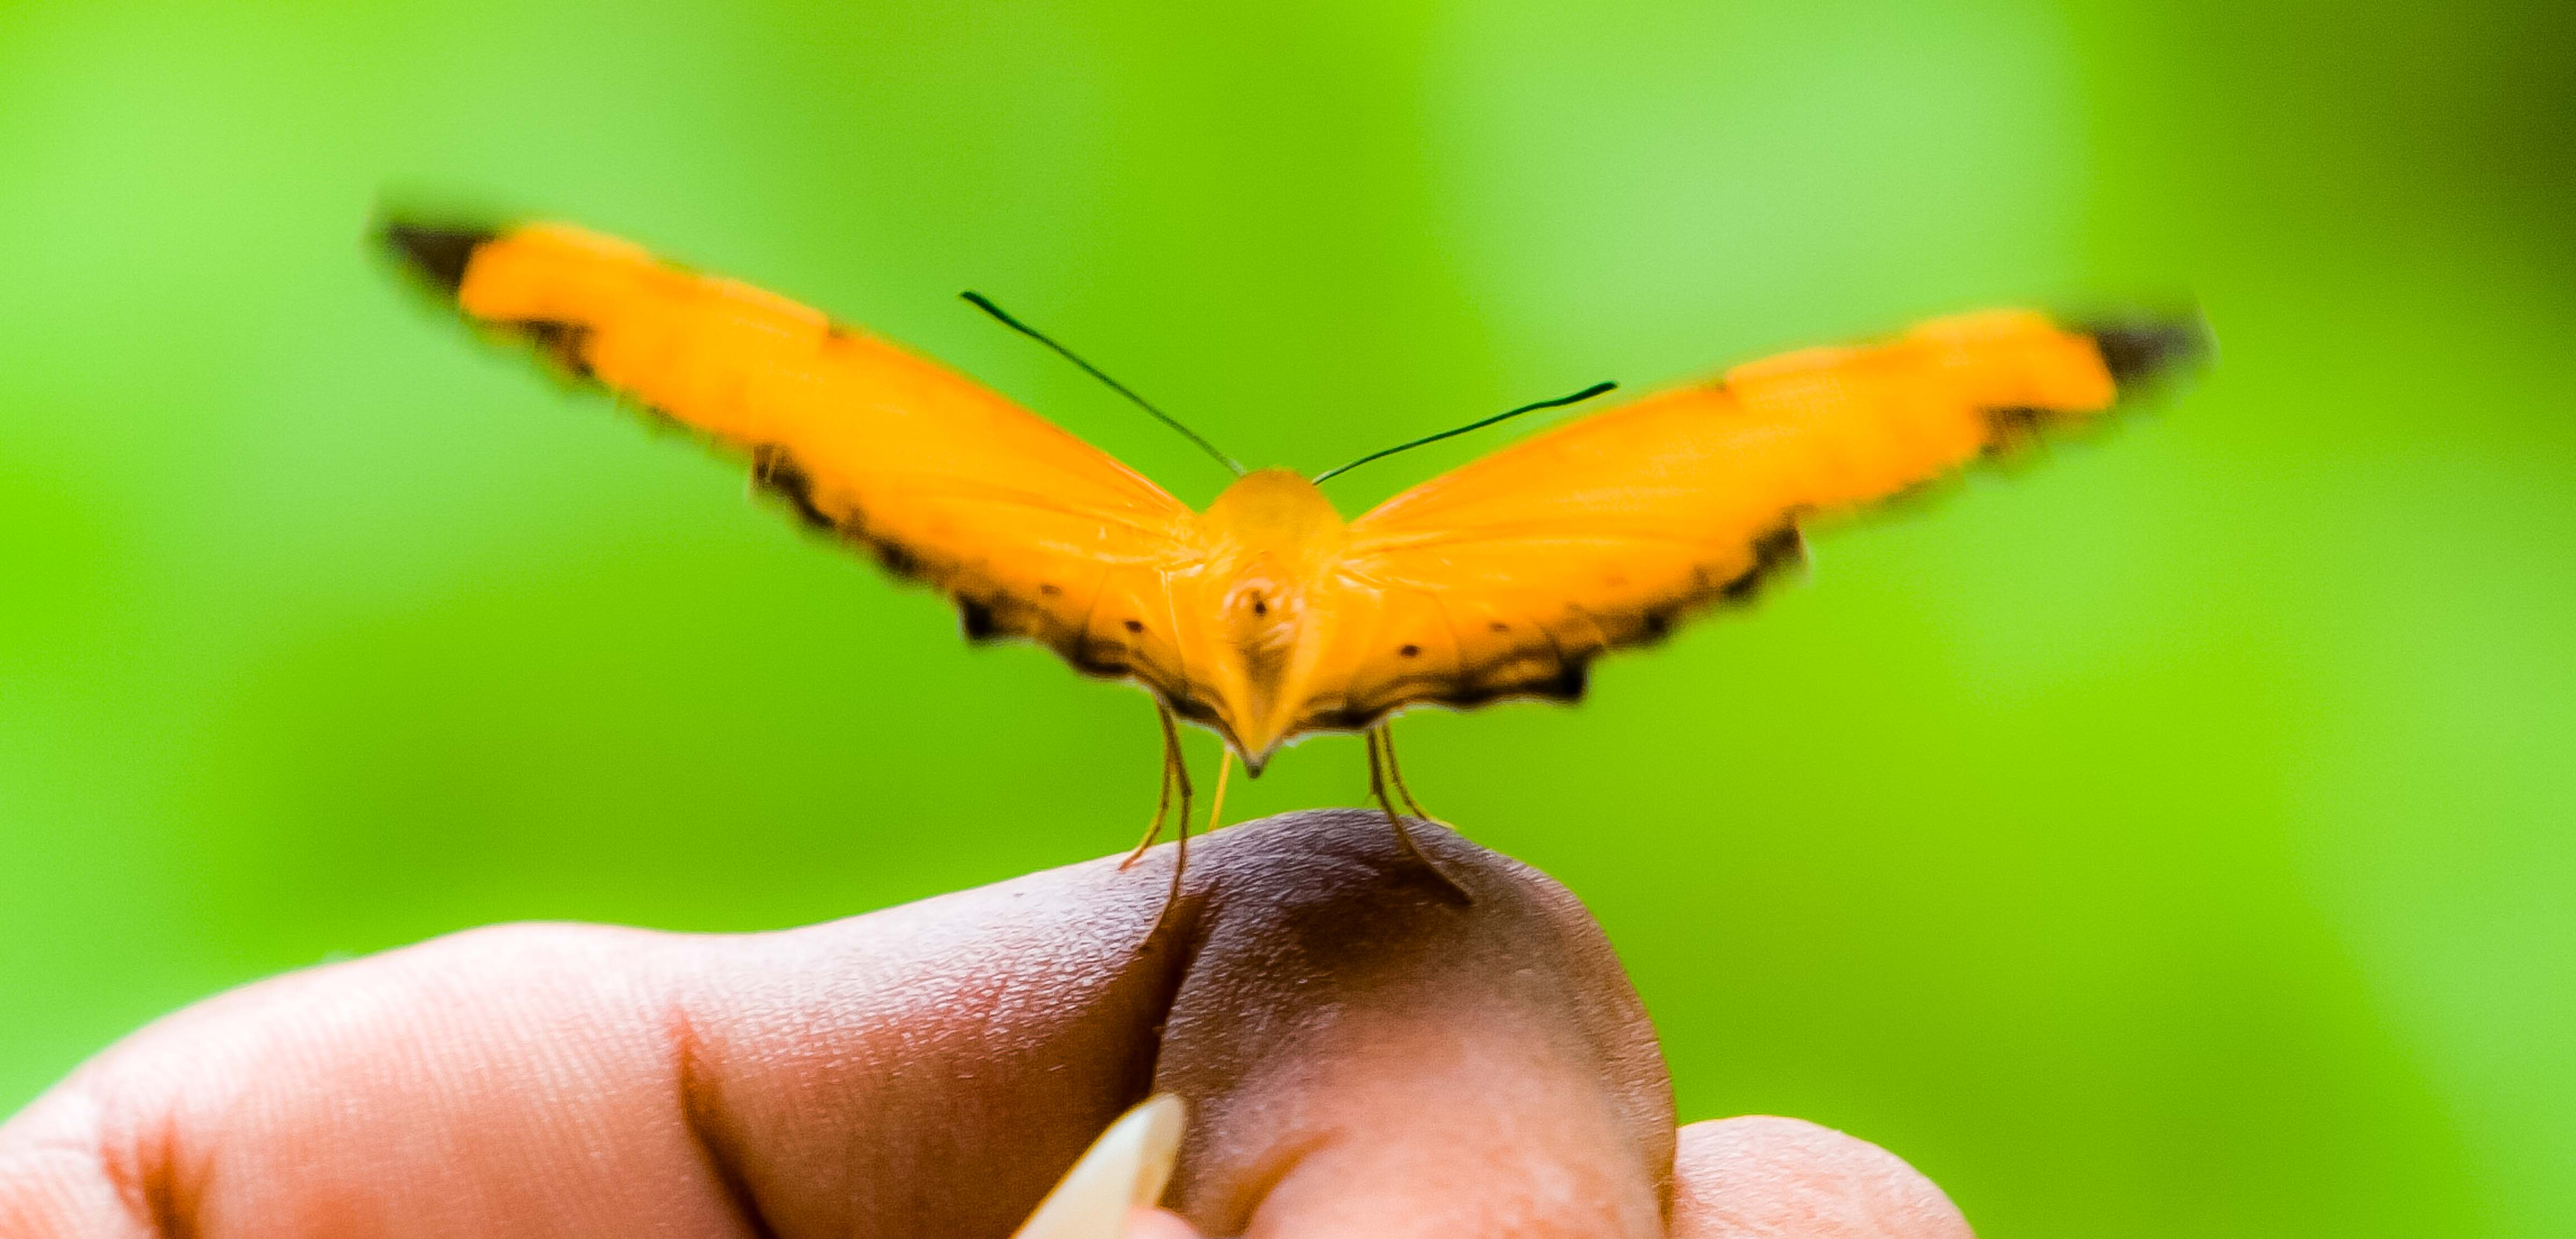 Seram, Orange Butterfly On Finger, 2006